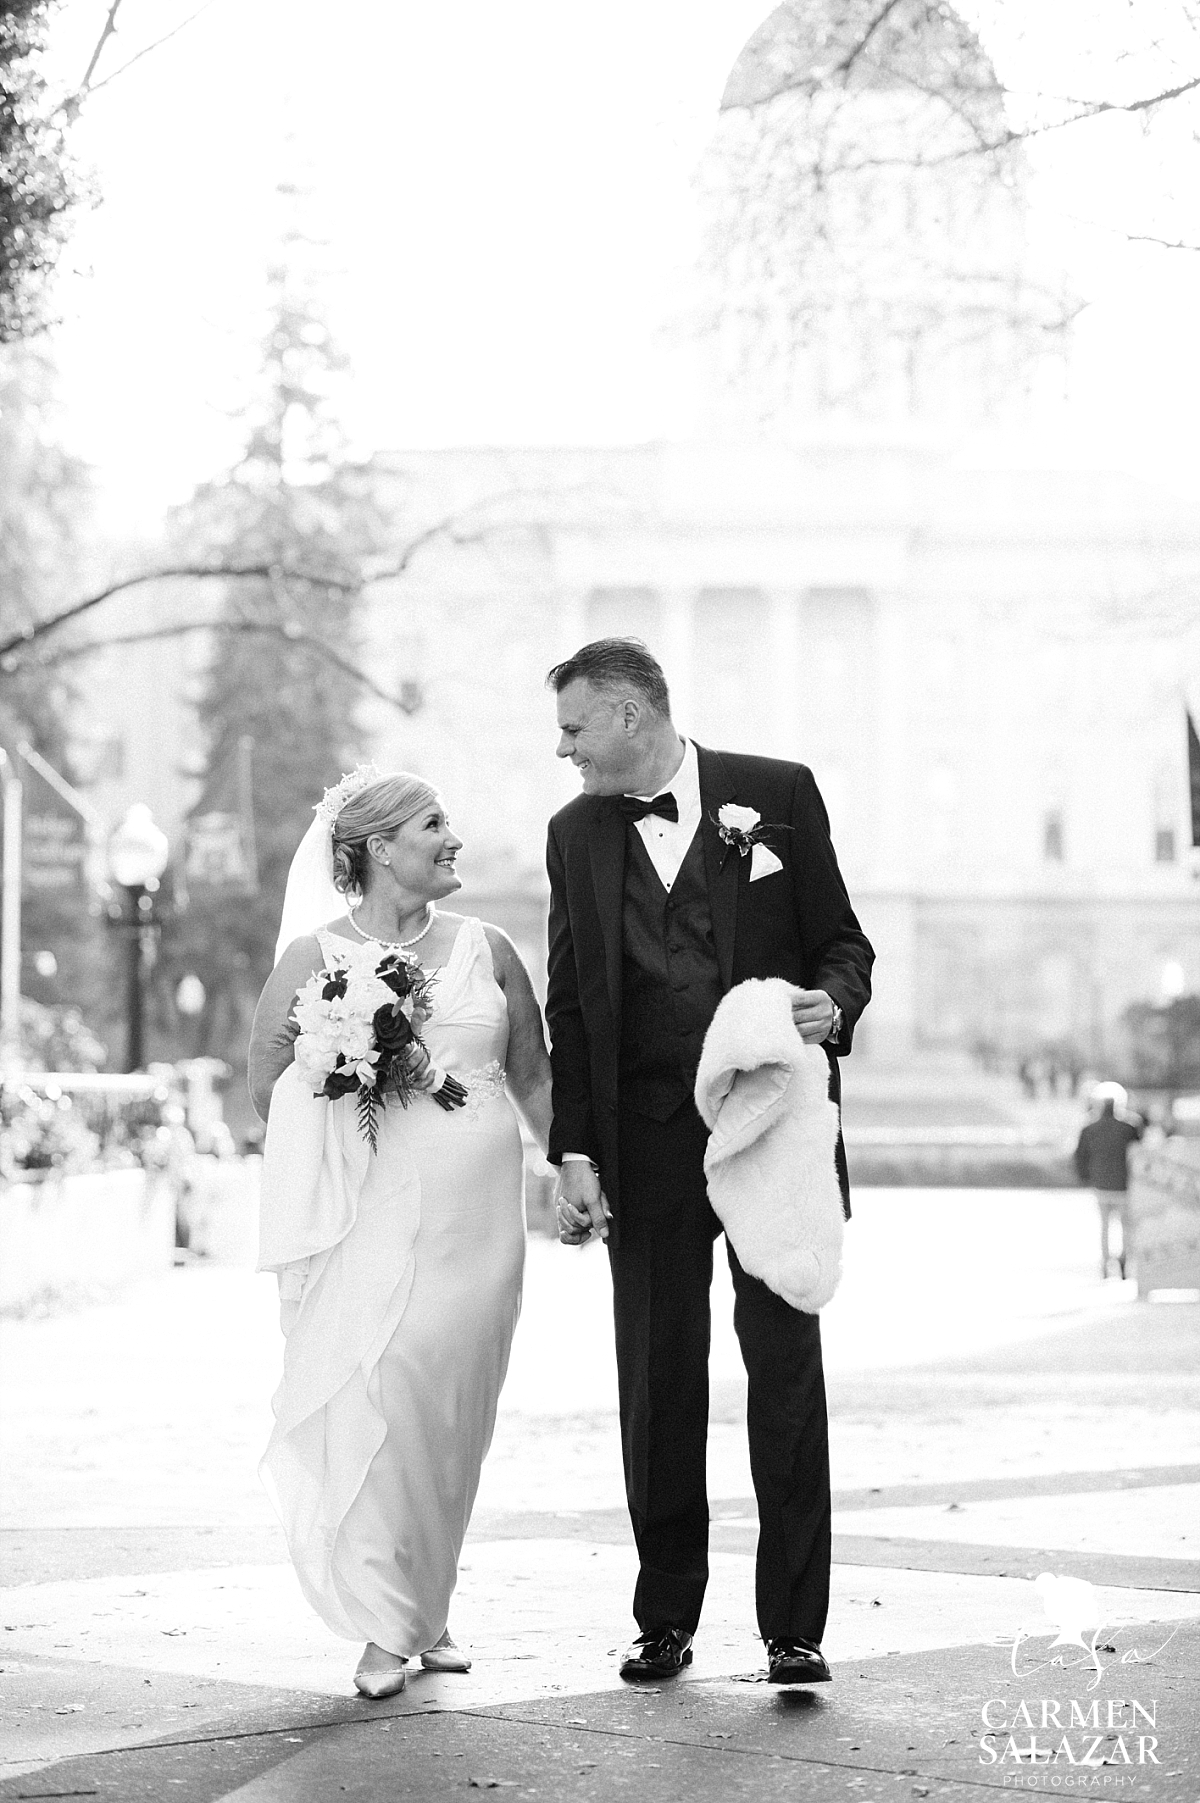 Sacramento Capitol wedding photography - Carmen Salazar